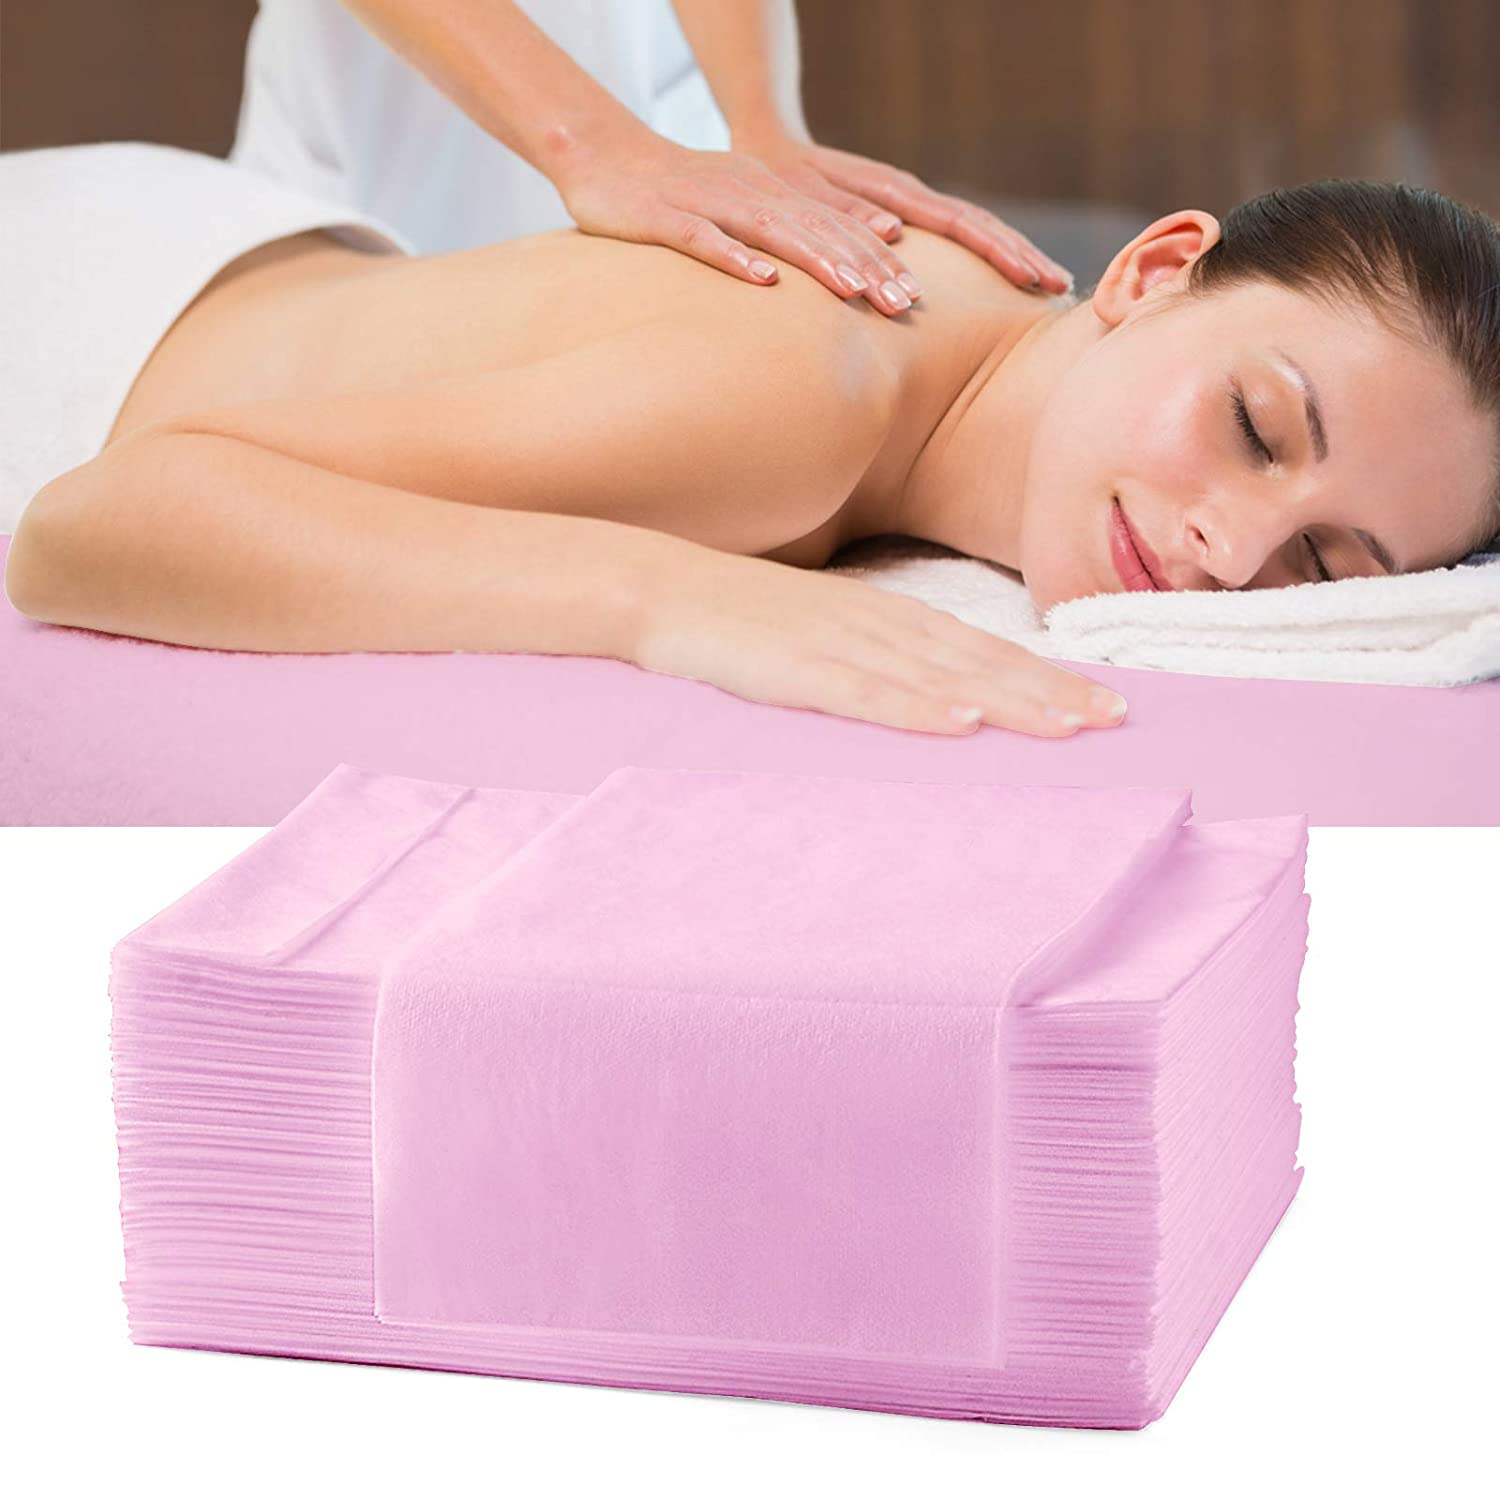 AMZGIRL 25pcs Disposable Bed Sheet Massage Table Sheet Waterproof Non Woven Fabric Breathable Bed Cover for SPA Tattoo Hotels Beauty Salon 31in71in (Pink)